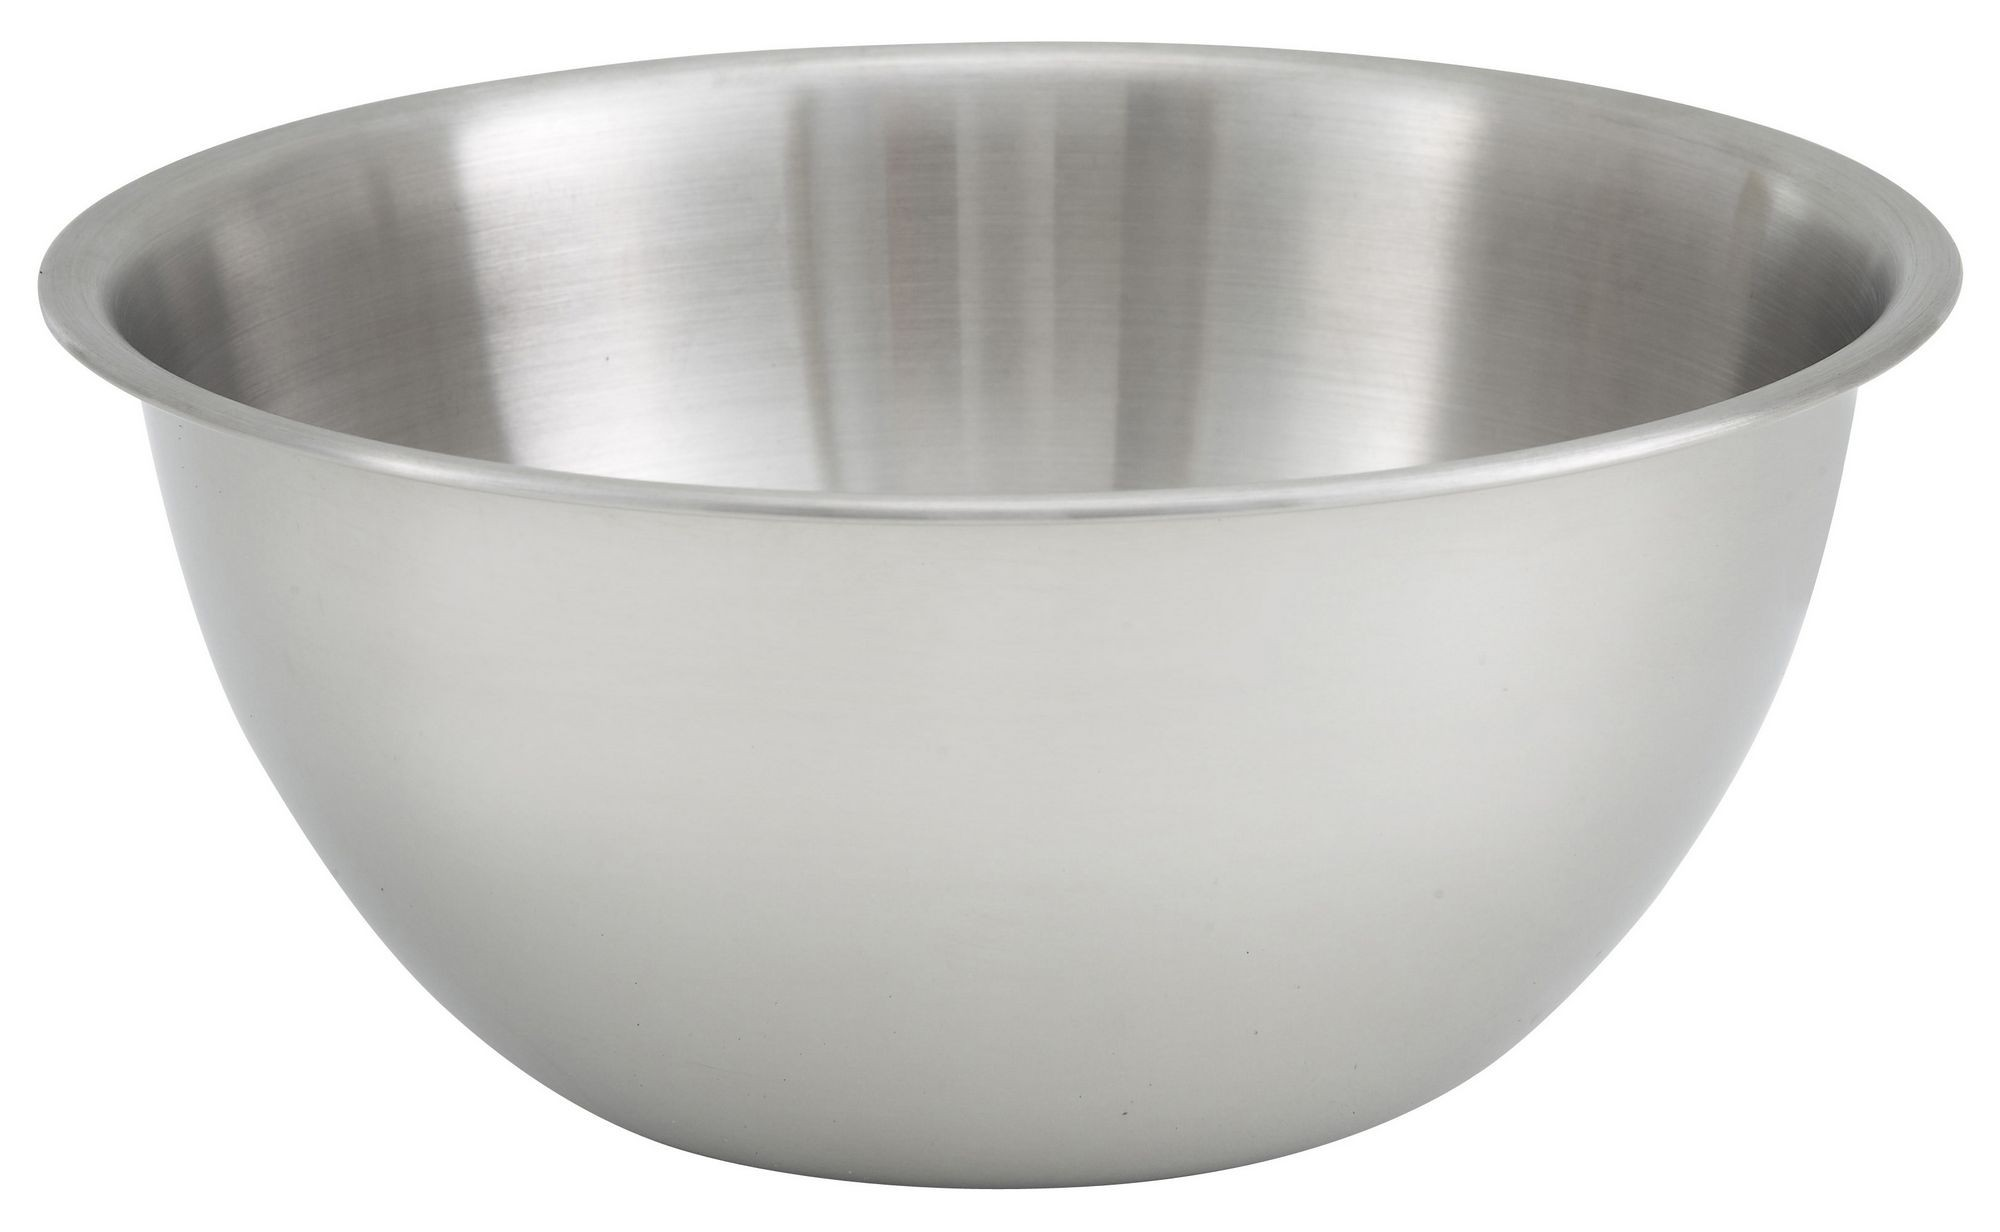 Winco MXBH-500 Heavy Duty Stainless Steel 5 Qt. Mixing Bowl